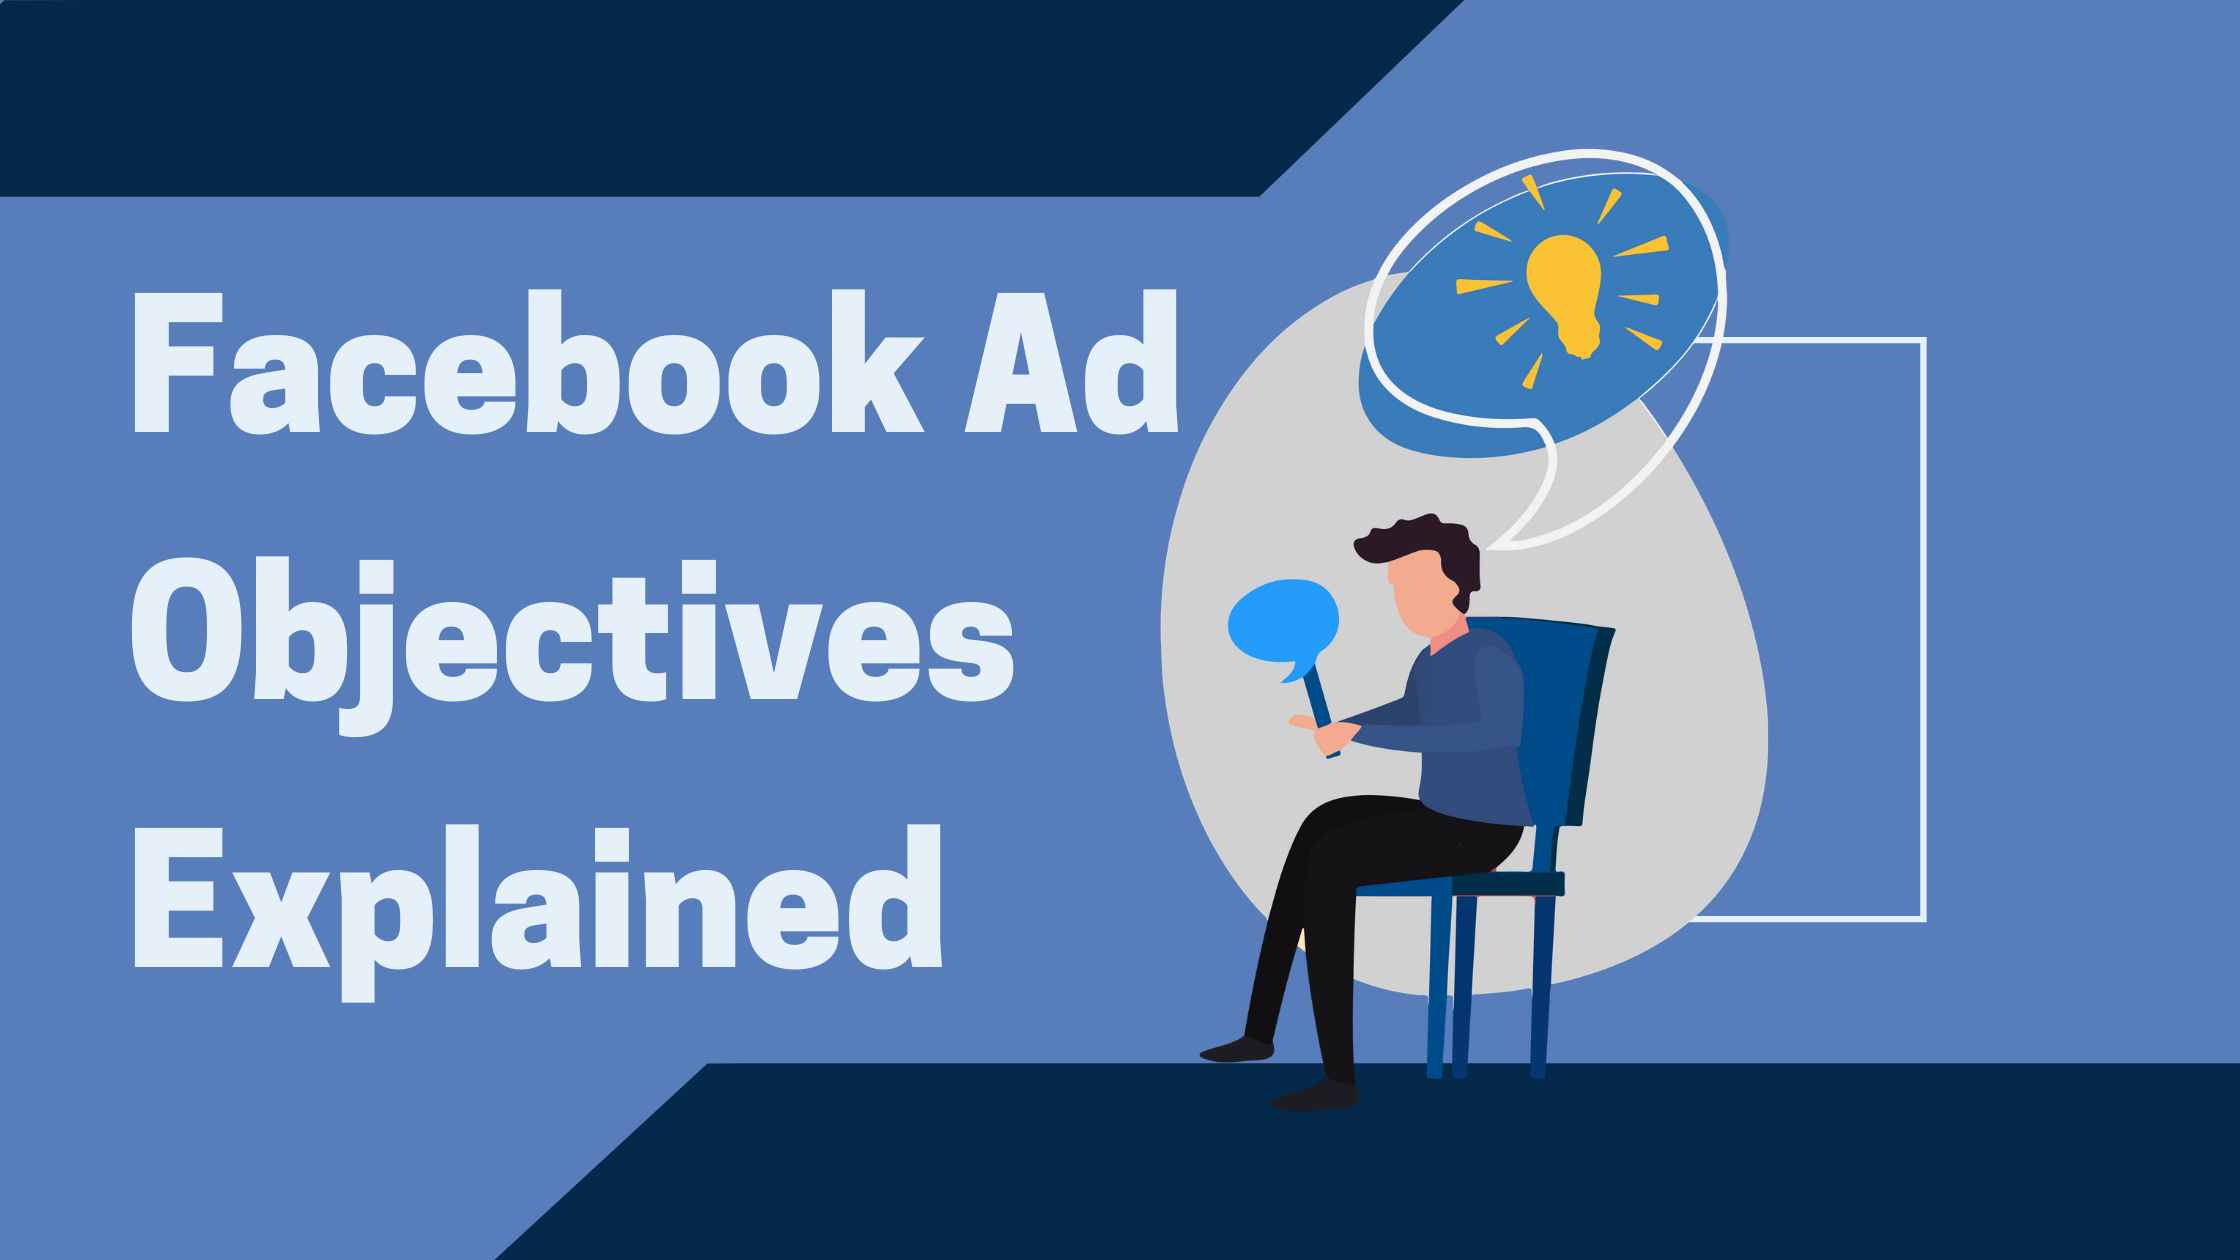 A visual of Facebook Ad Objectives explained